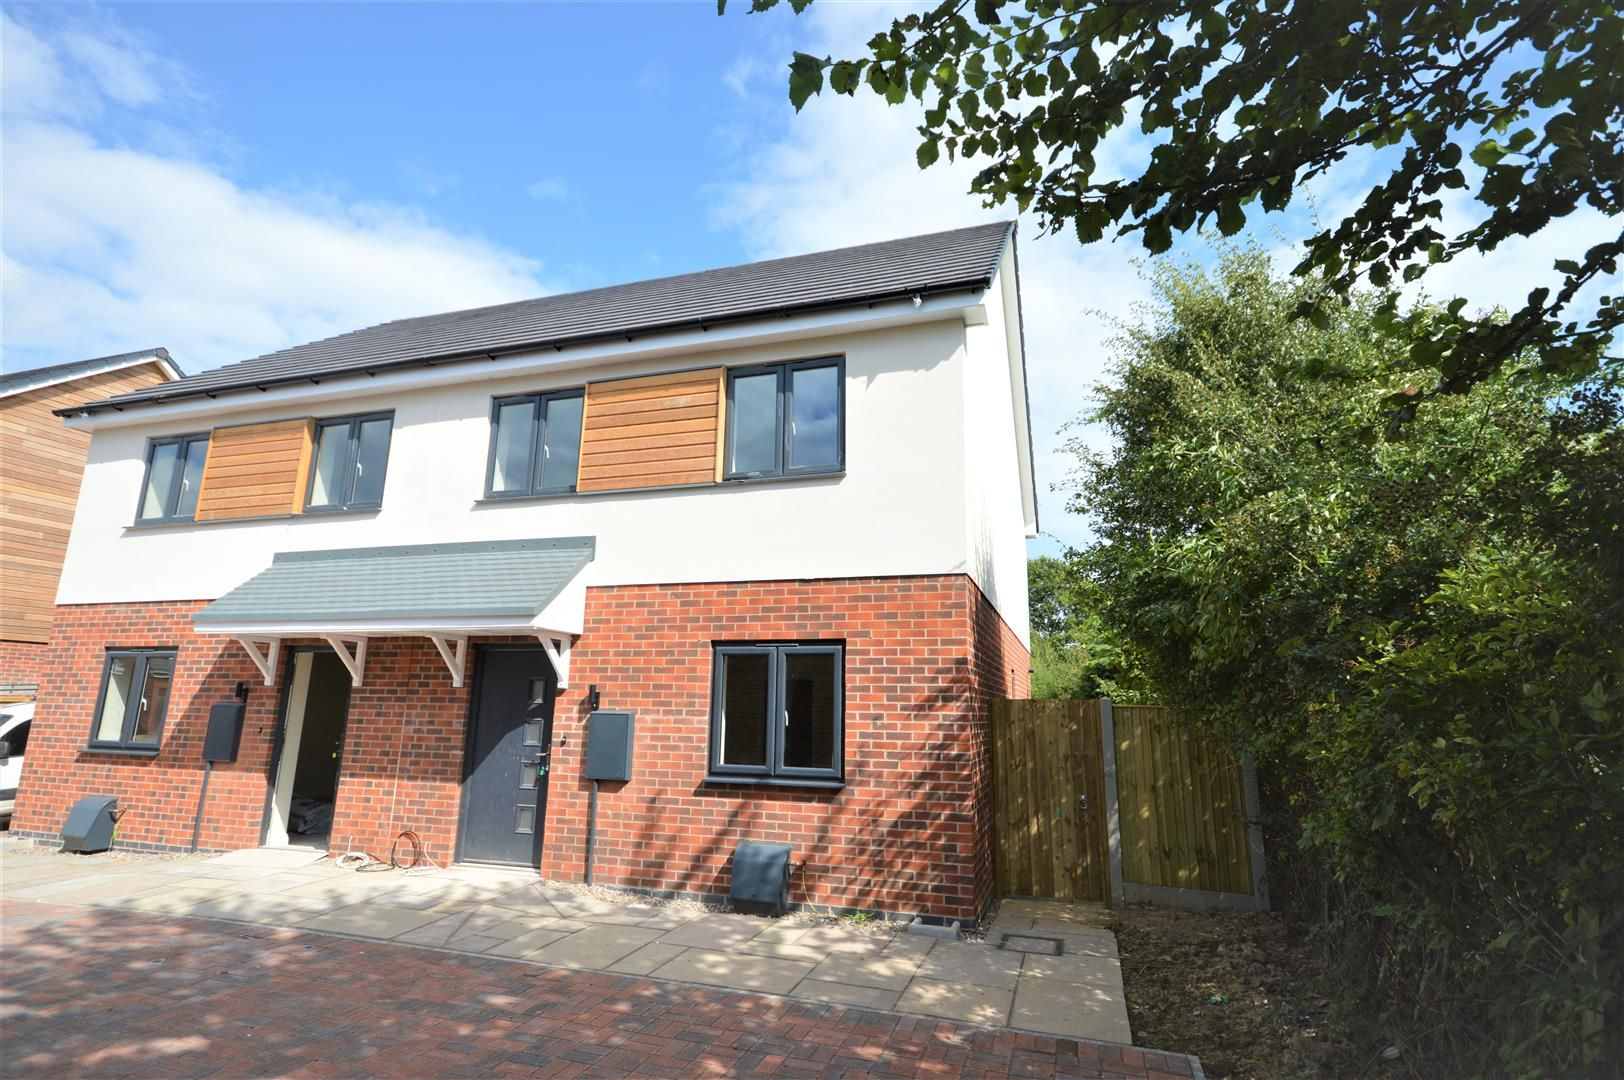 3 bed semi-detached for sale in Kingsland, HR6